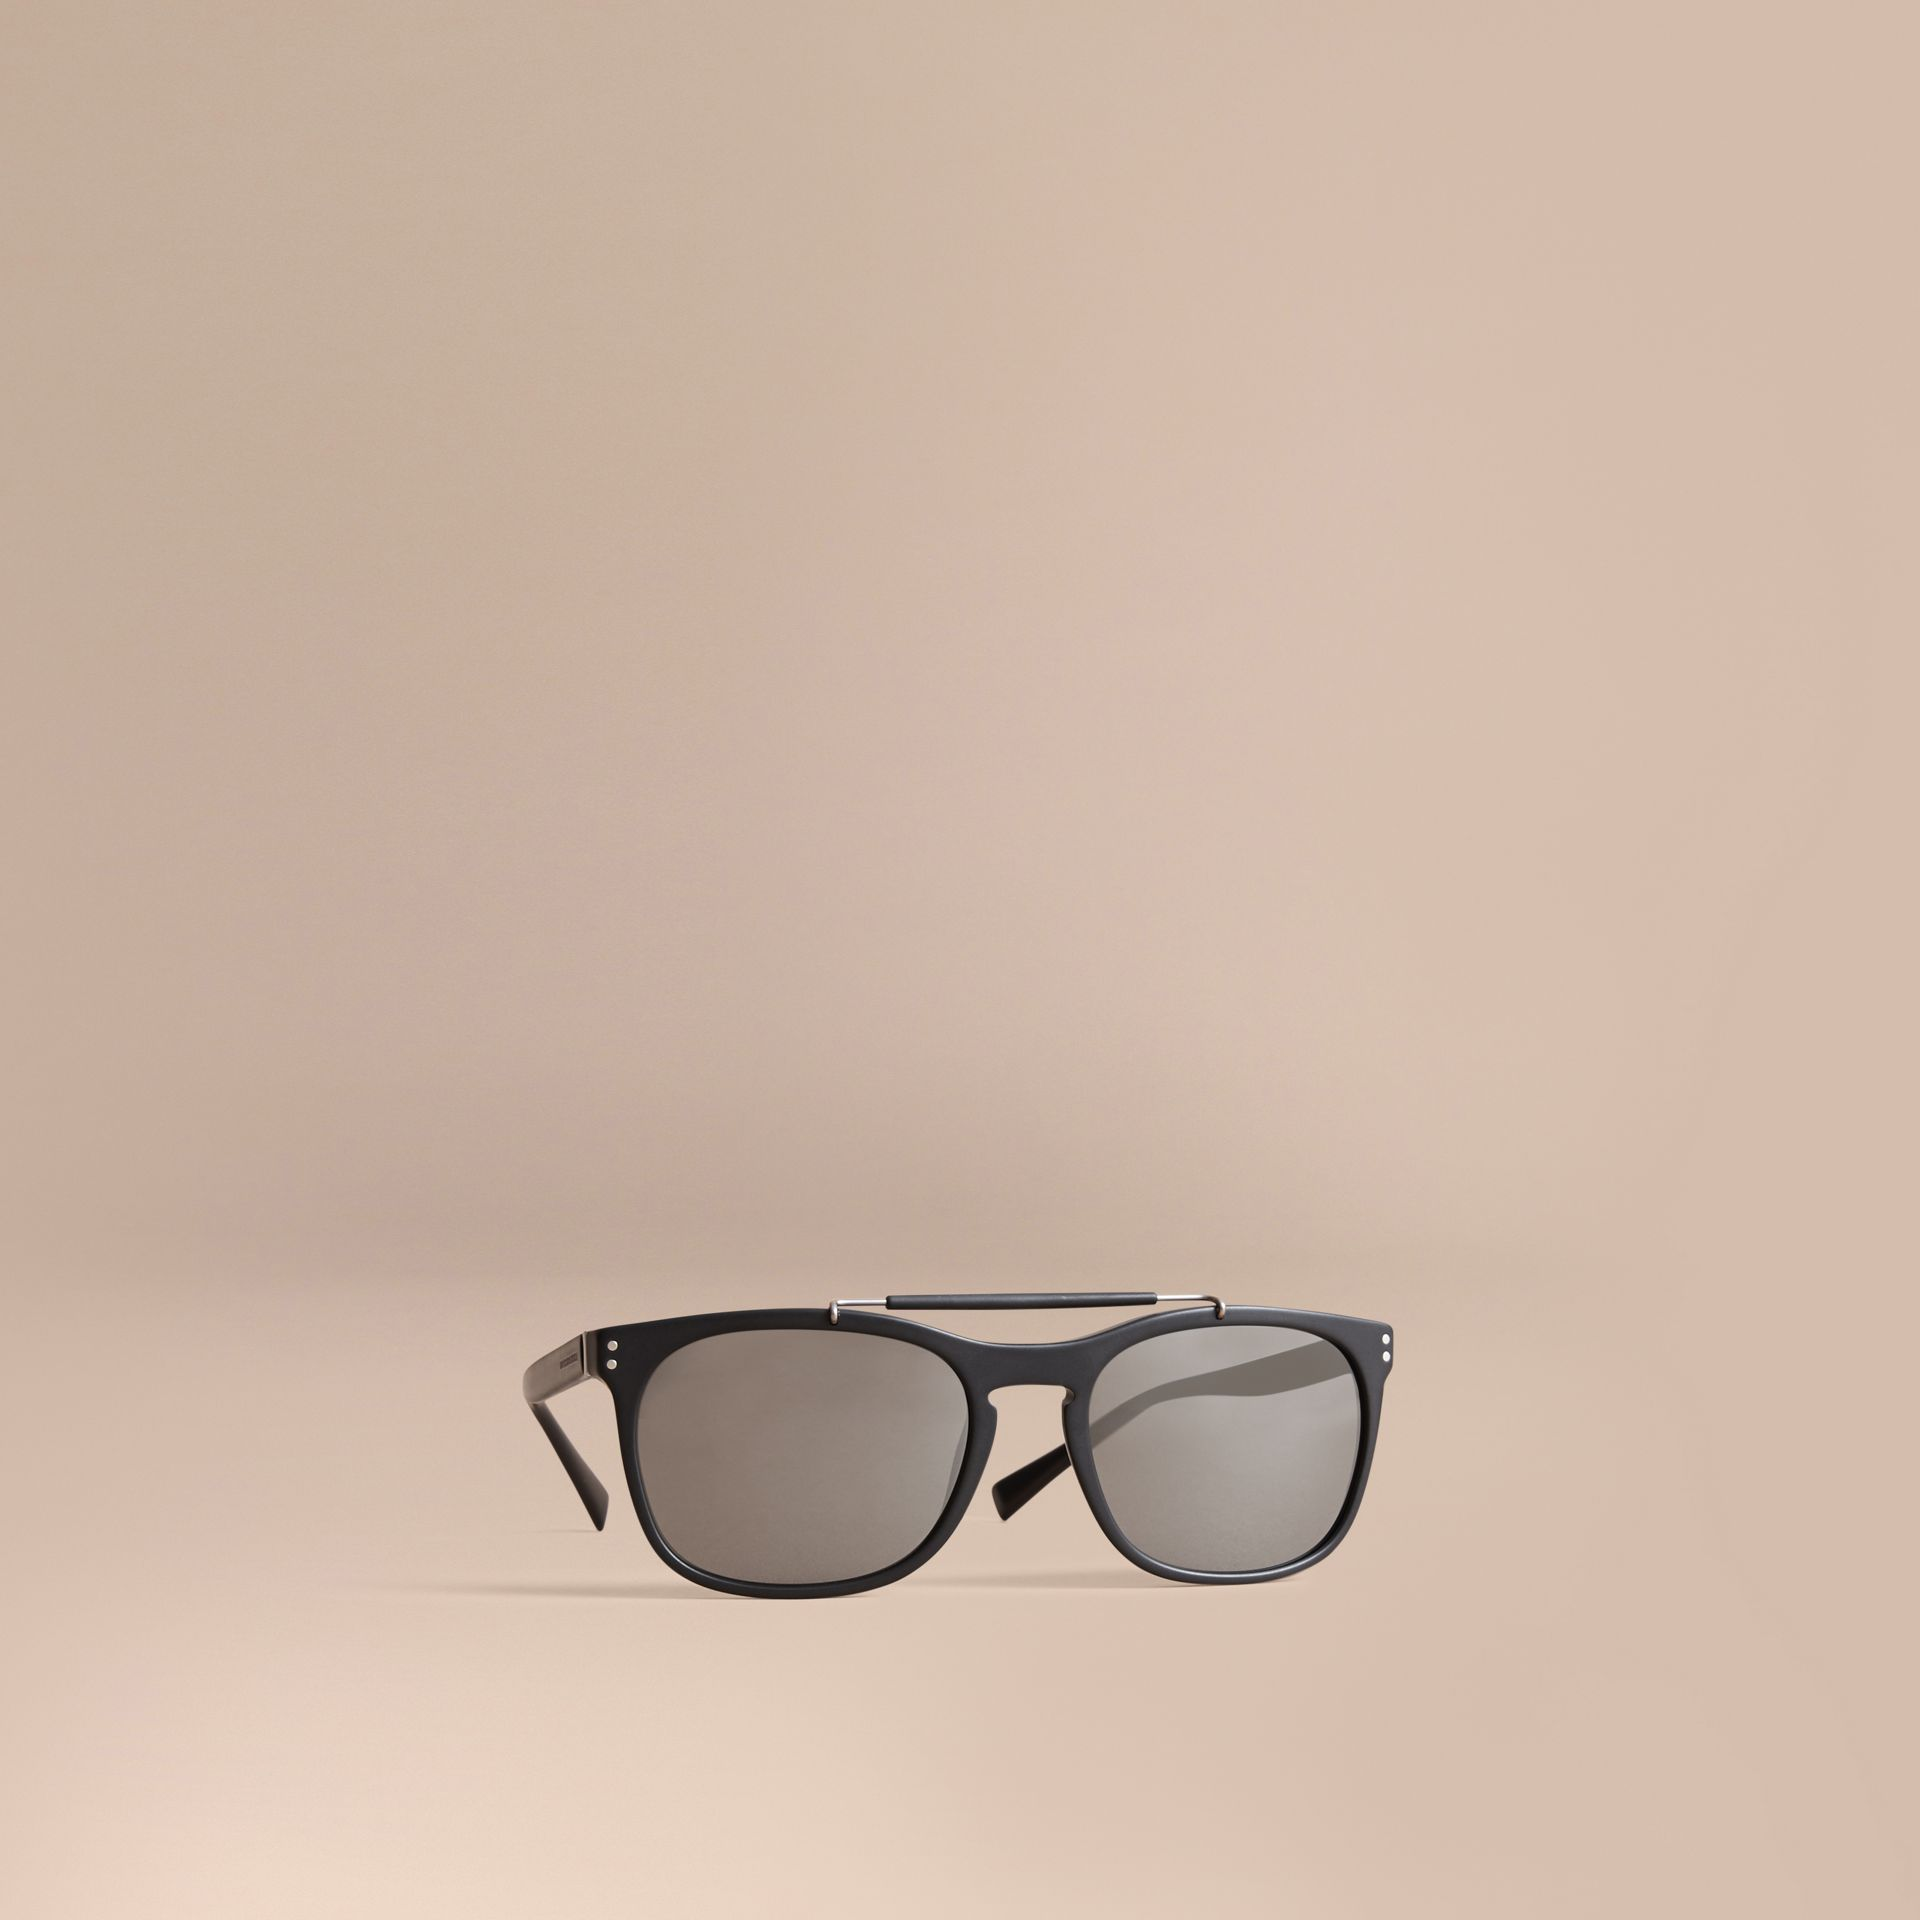 Top Bar Square Frame Sunglasses in Black - Men | Burberry United Kingdom - gallery image 1